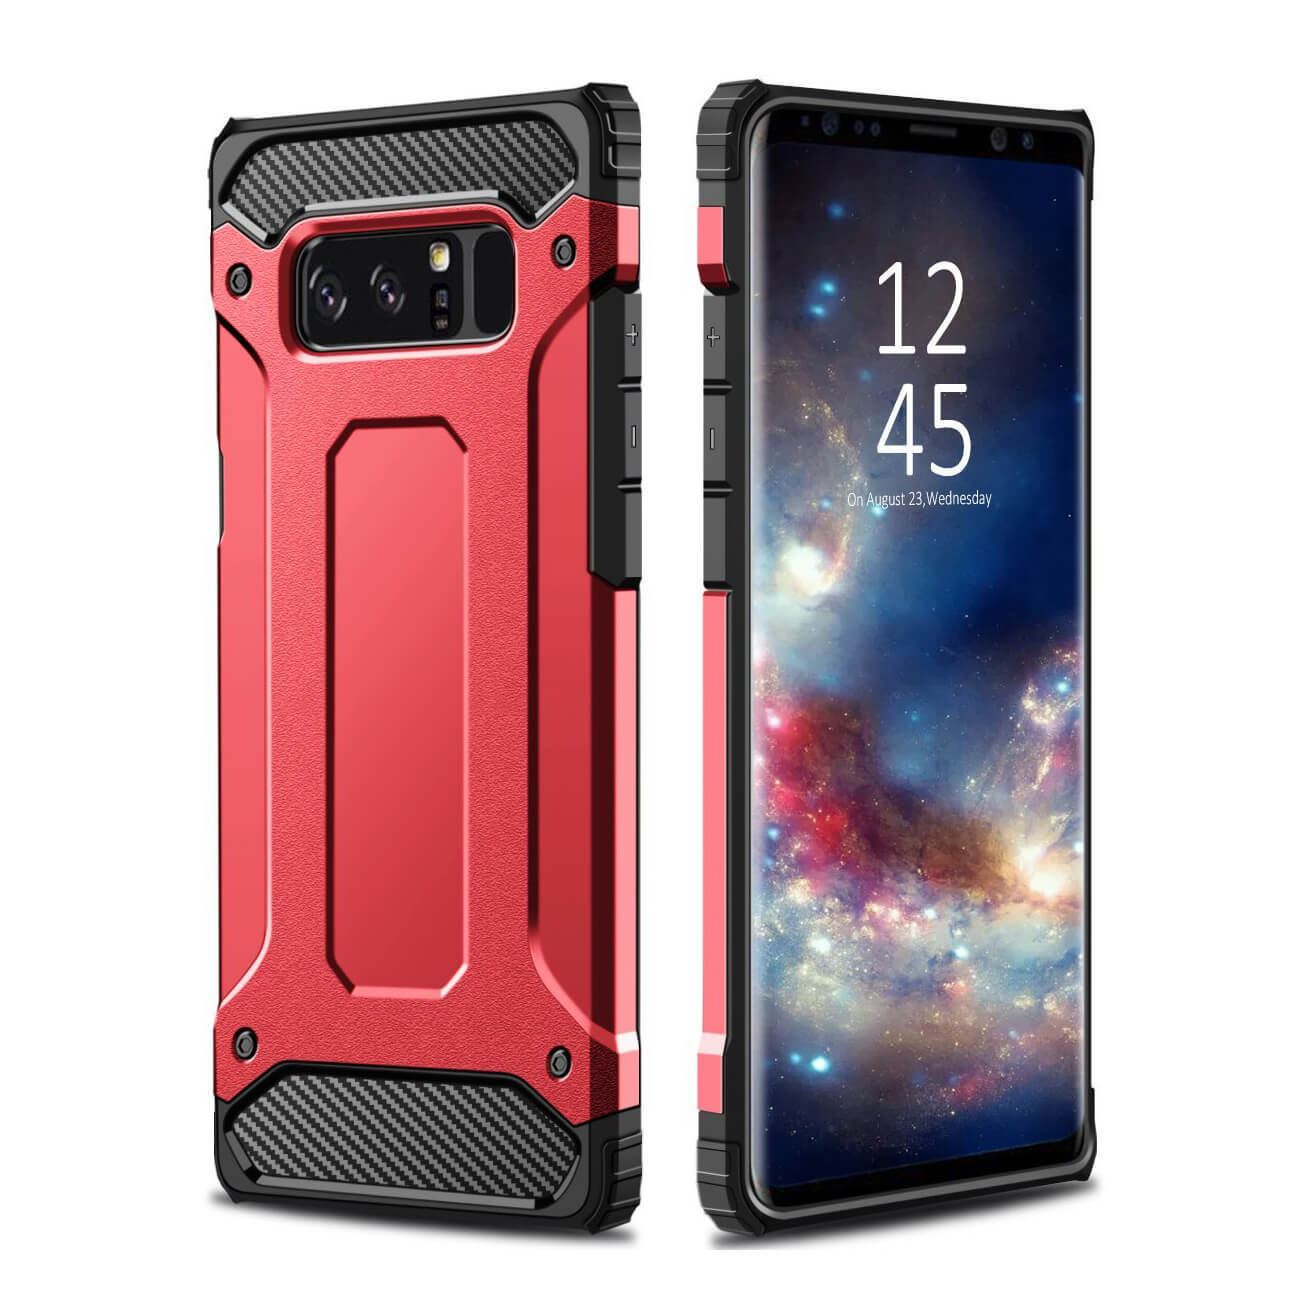 Hybrid-Armor-Shockproof-Rugged-Bumper-Case-For-Samsung-Galaxy-S7-Edge-S8-Note-S9